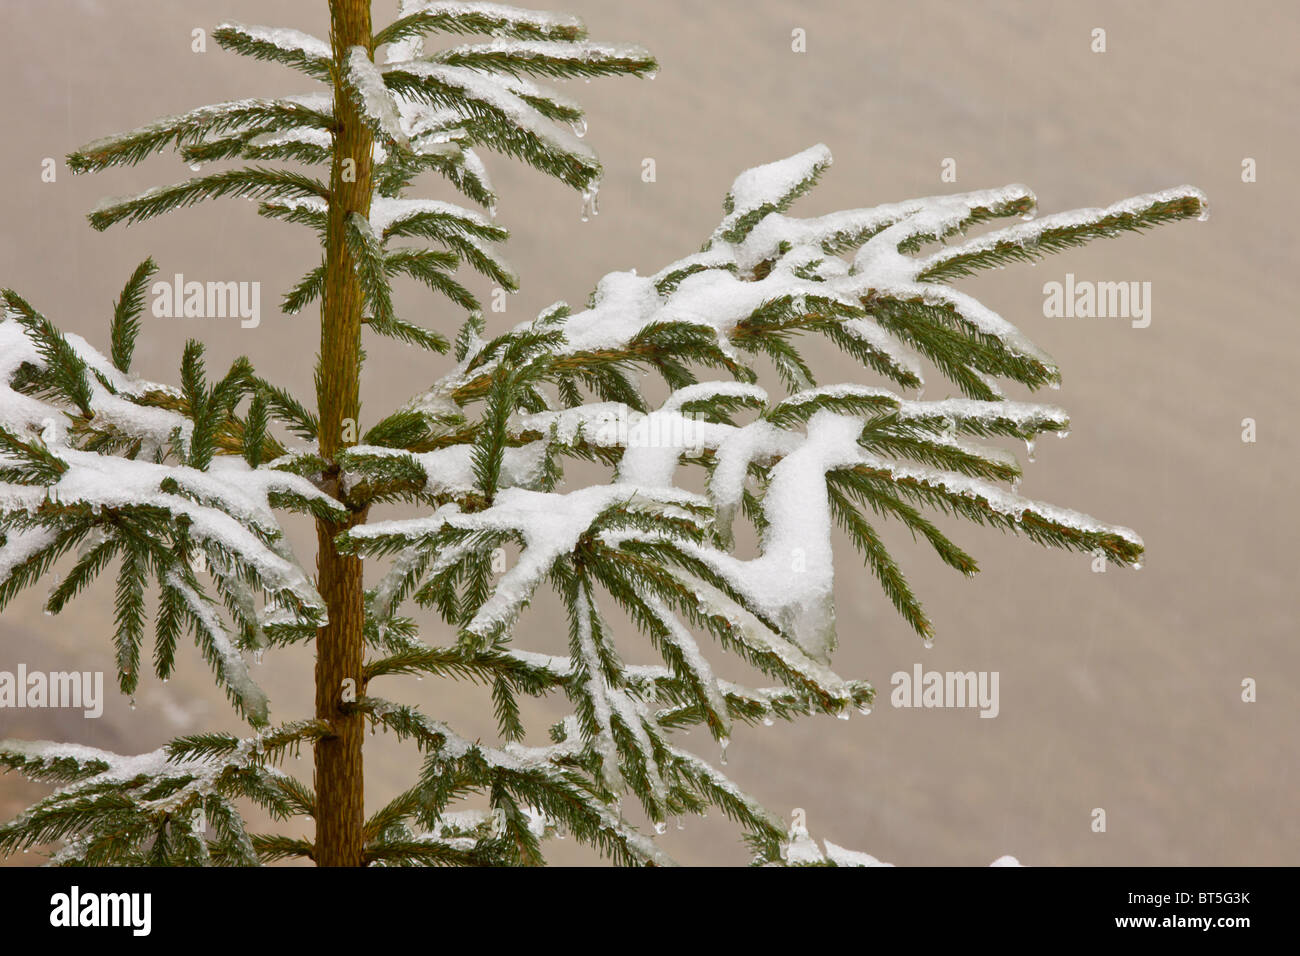 Norway Spruce tree covered with light snow and frost, high in the Fagaras Mountains, southern carpathians, Romania - Stock Image